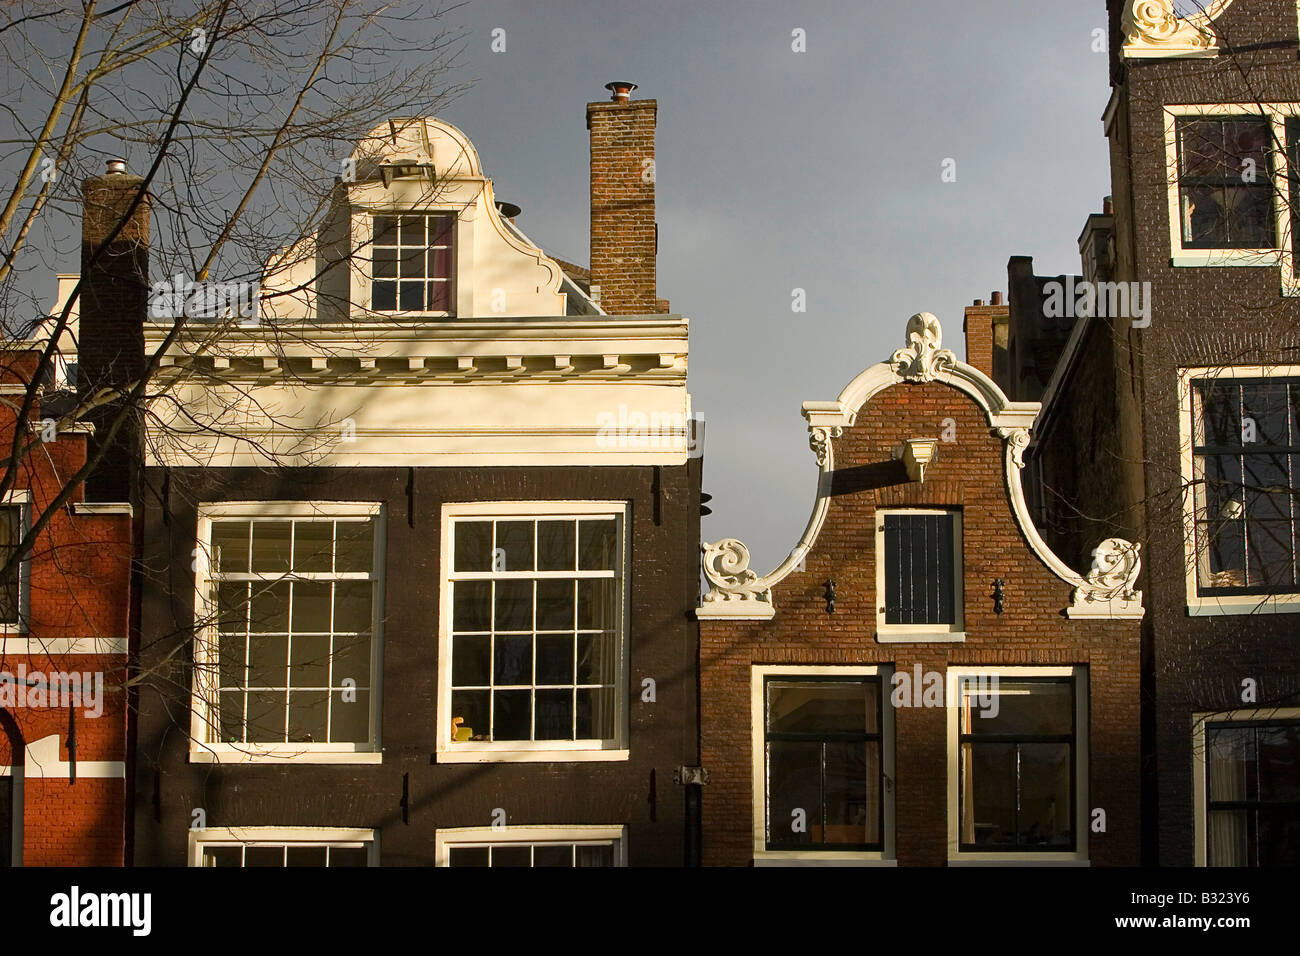 Typical Amsterdam gable ended houses - Stock Image